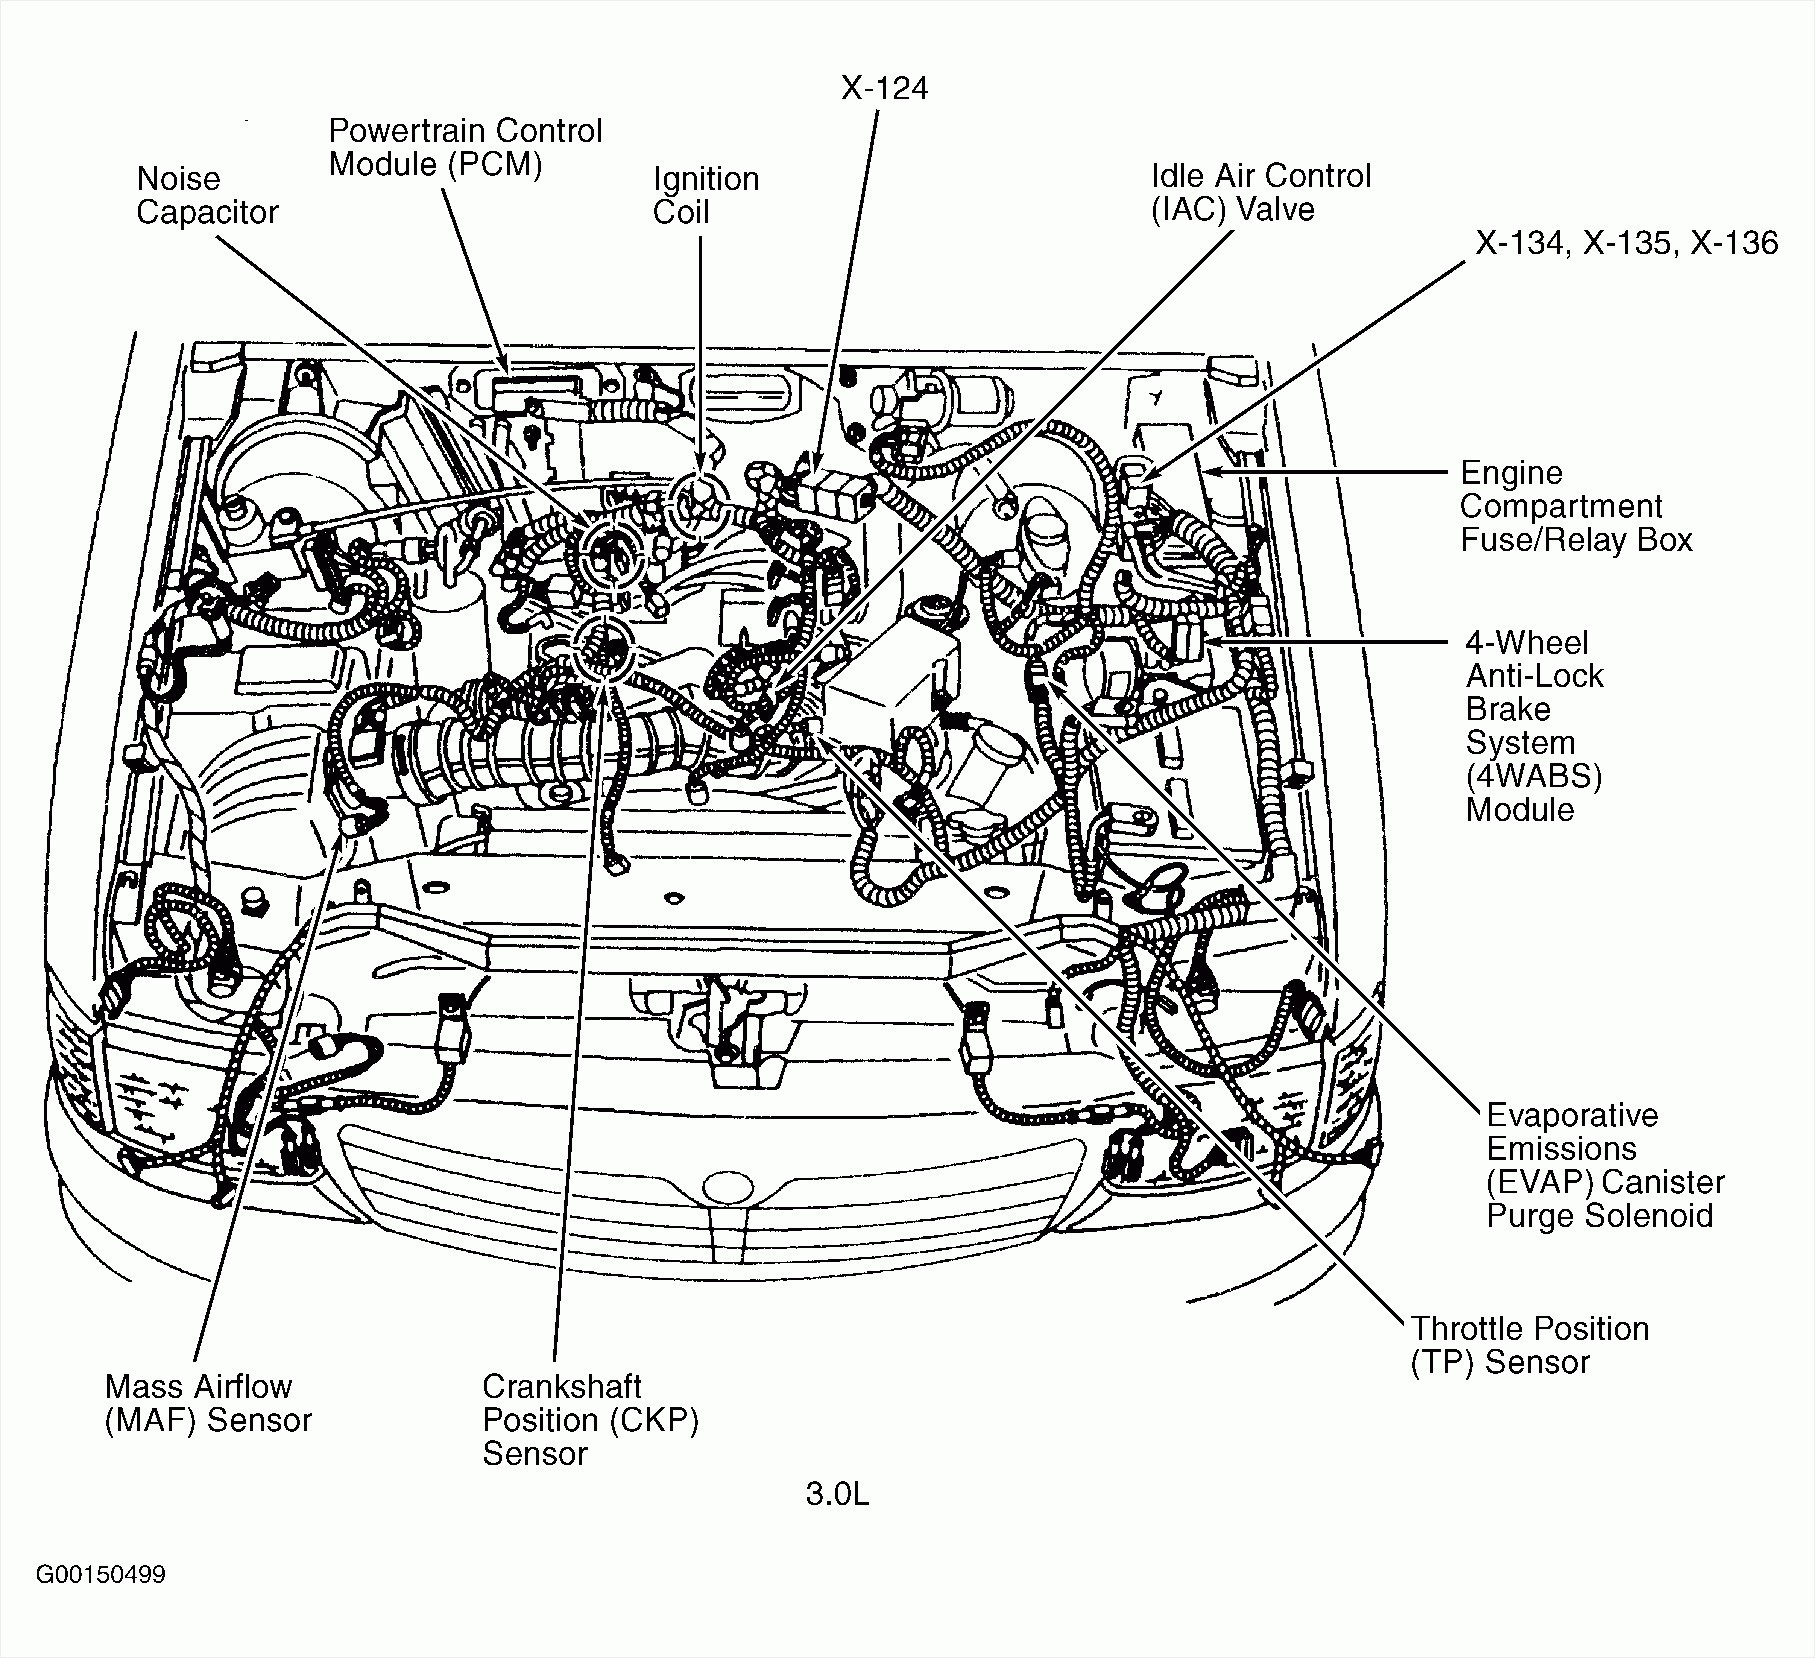 hight resolution of 2010 chrysler sebring engine diagram wiring diagram database 2010 chrysler sebring engine diagram